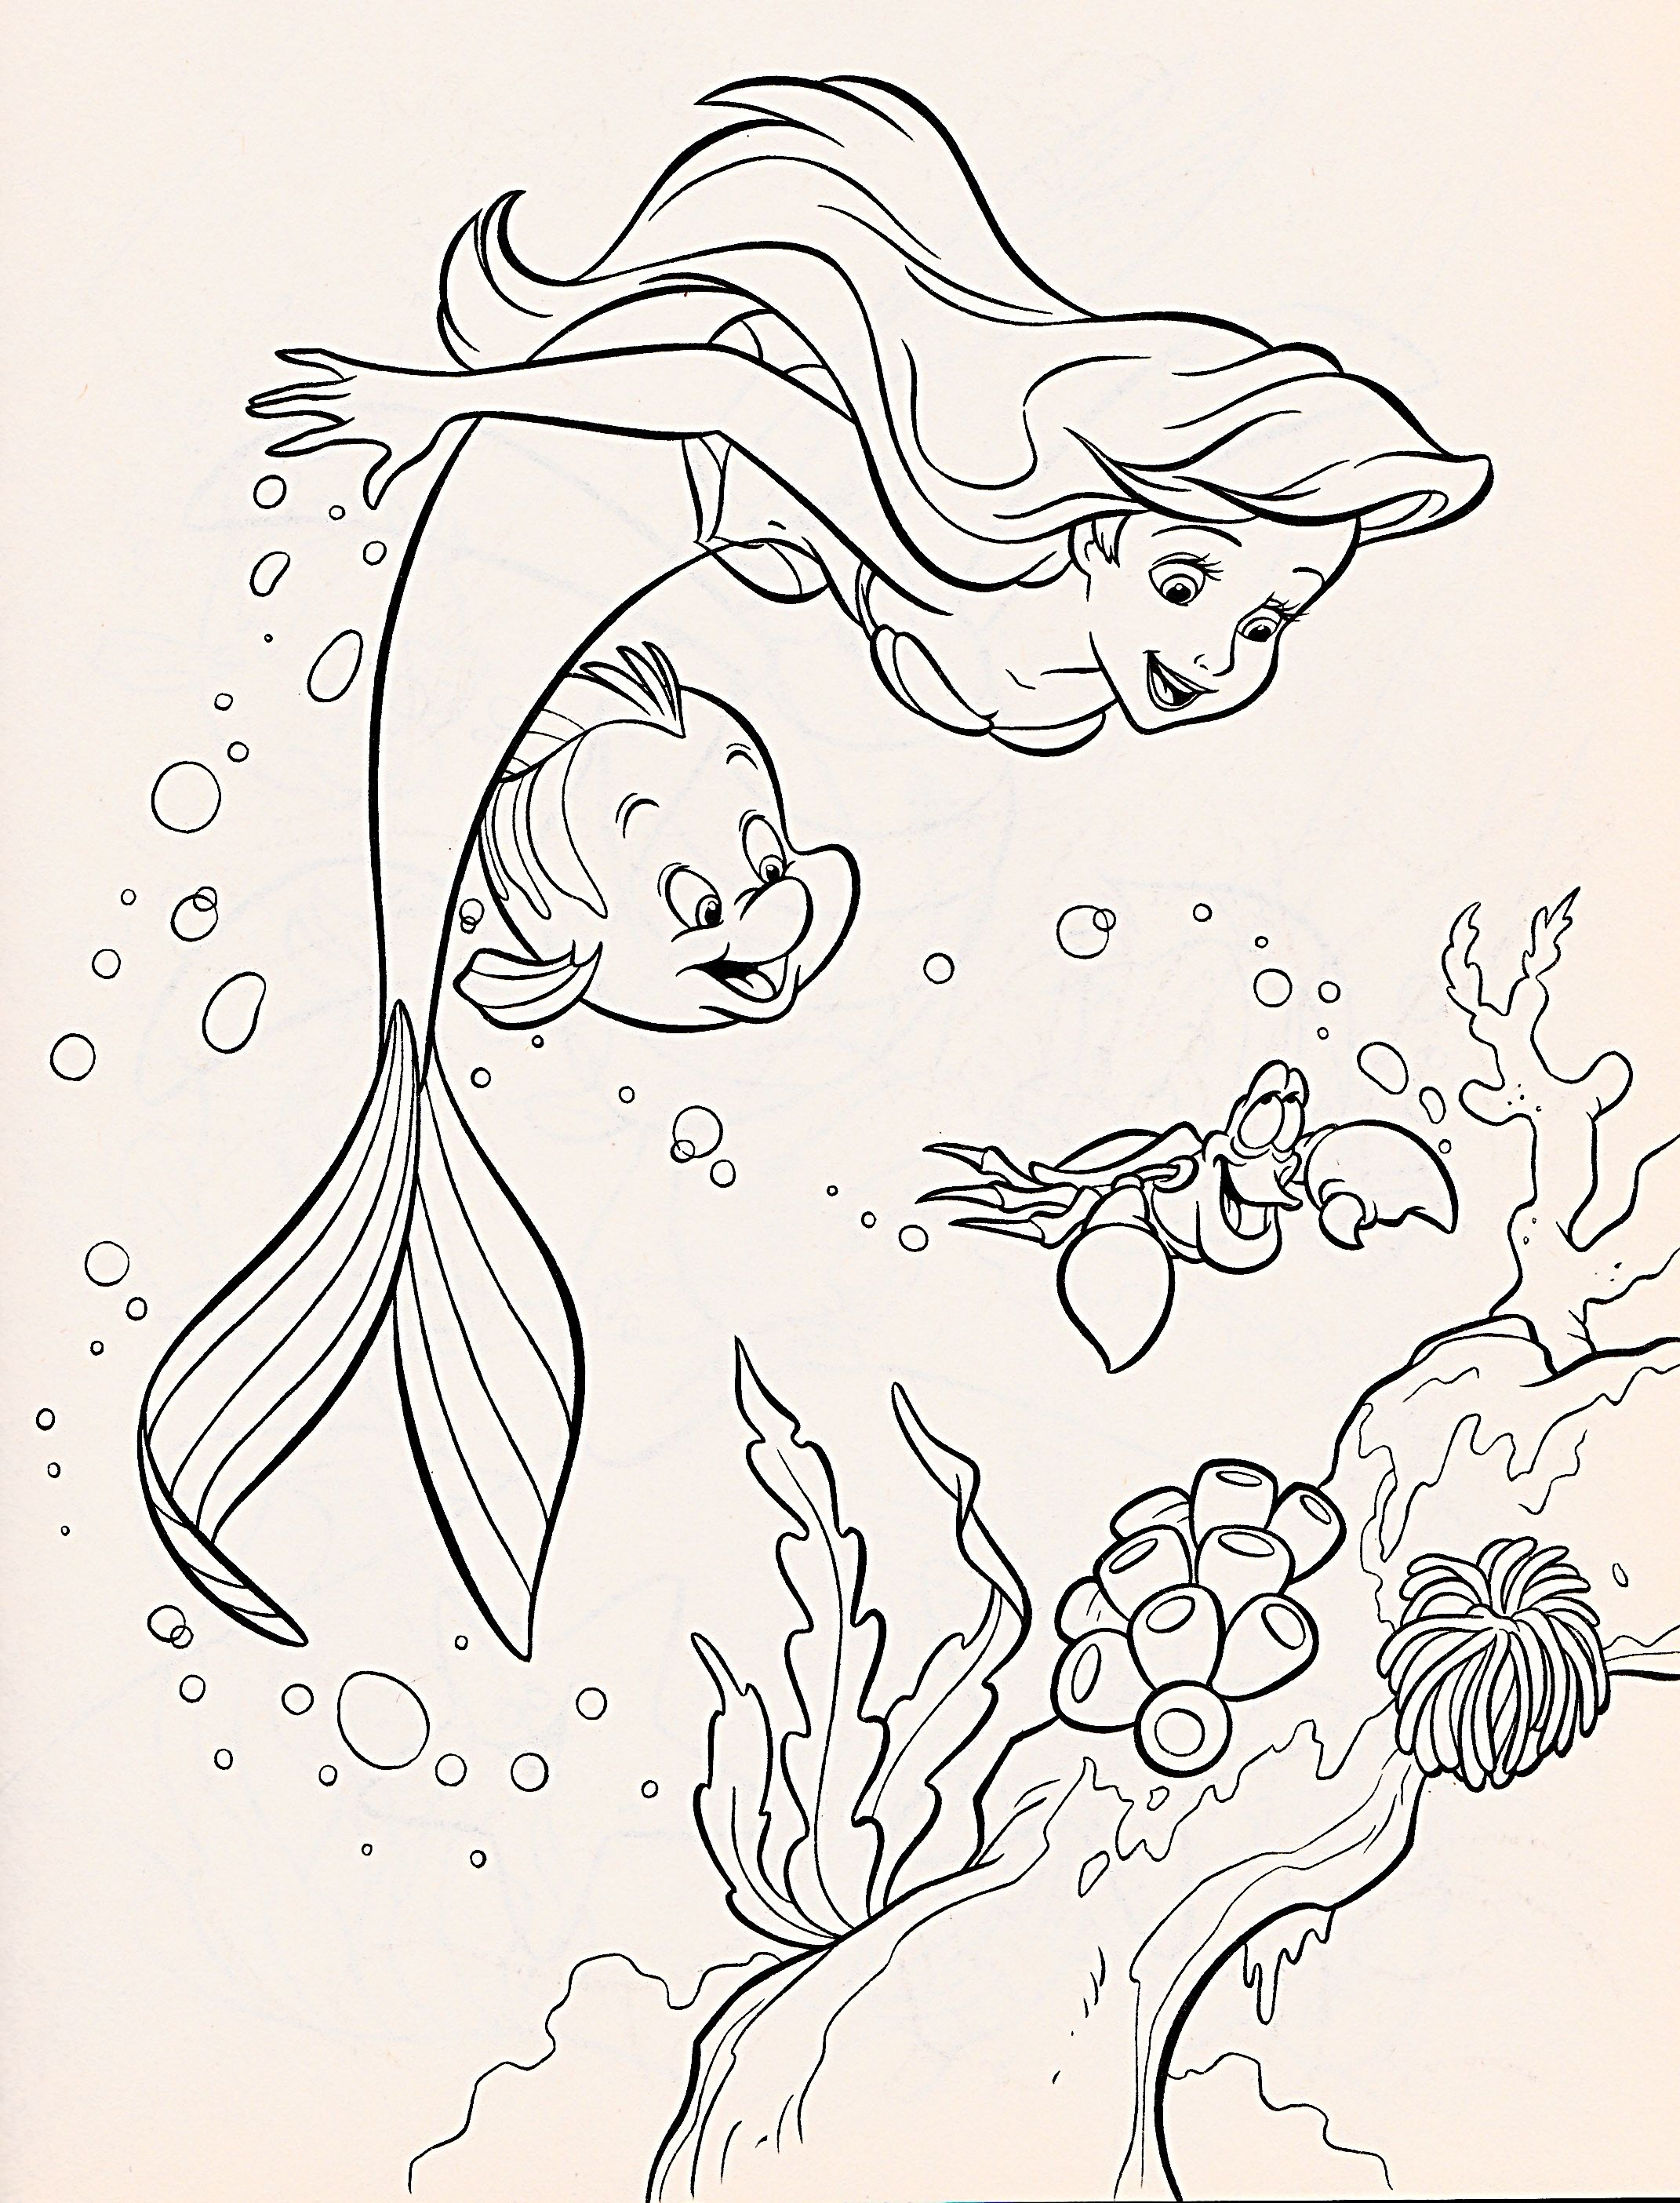 walt disney coloring page of princess ariel flounder and sebastian from the little mermaid hd wallpaper and background photos of walt disney coloring